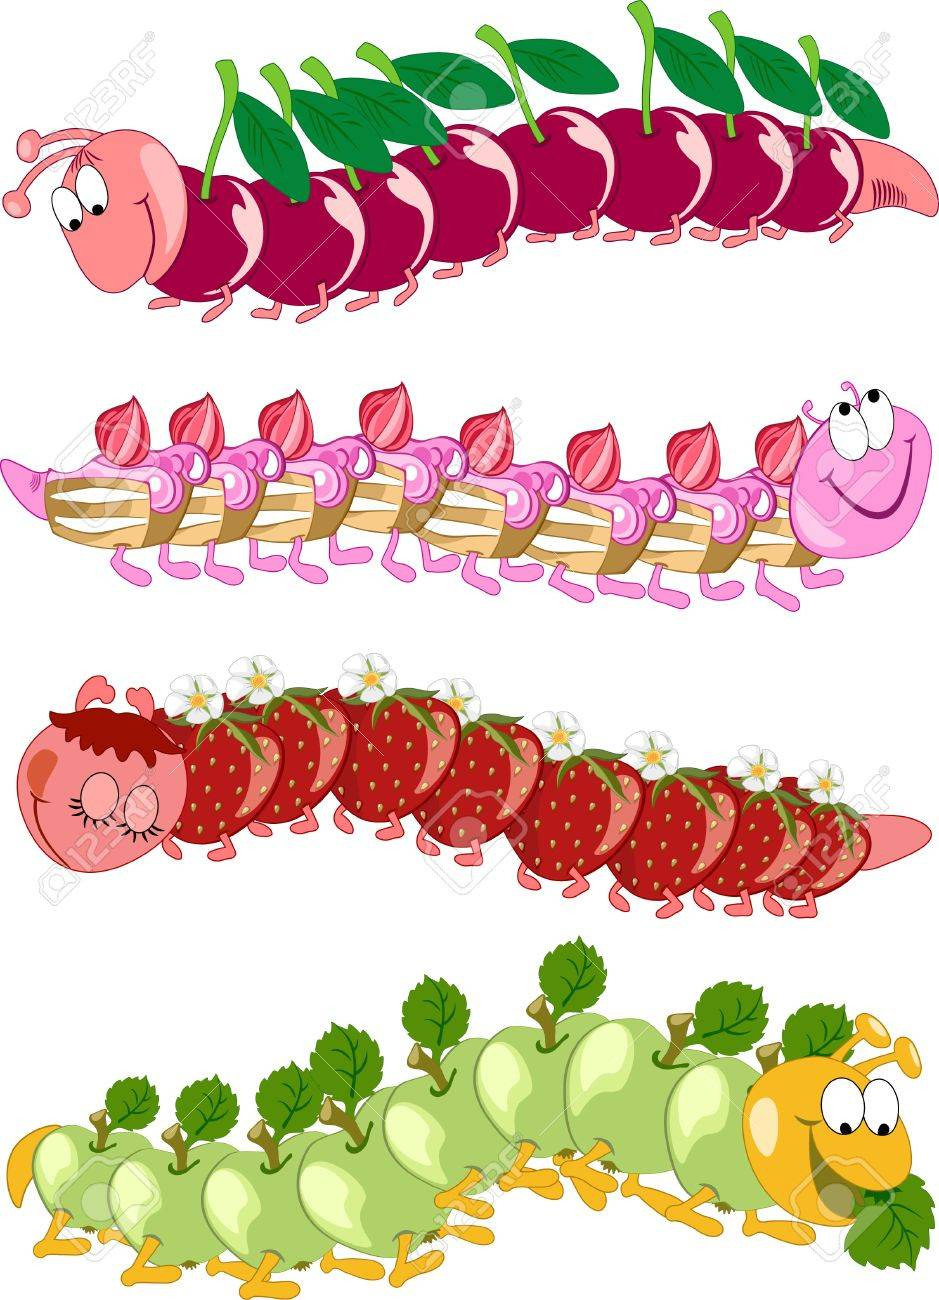 Several funny cartoon caterpillars, consisting of fruits and sweets.An illustration is divided into layers on a white background. Stock Vector - 9481800